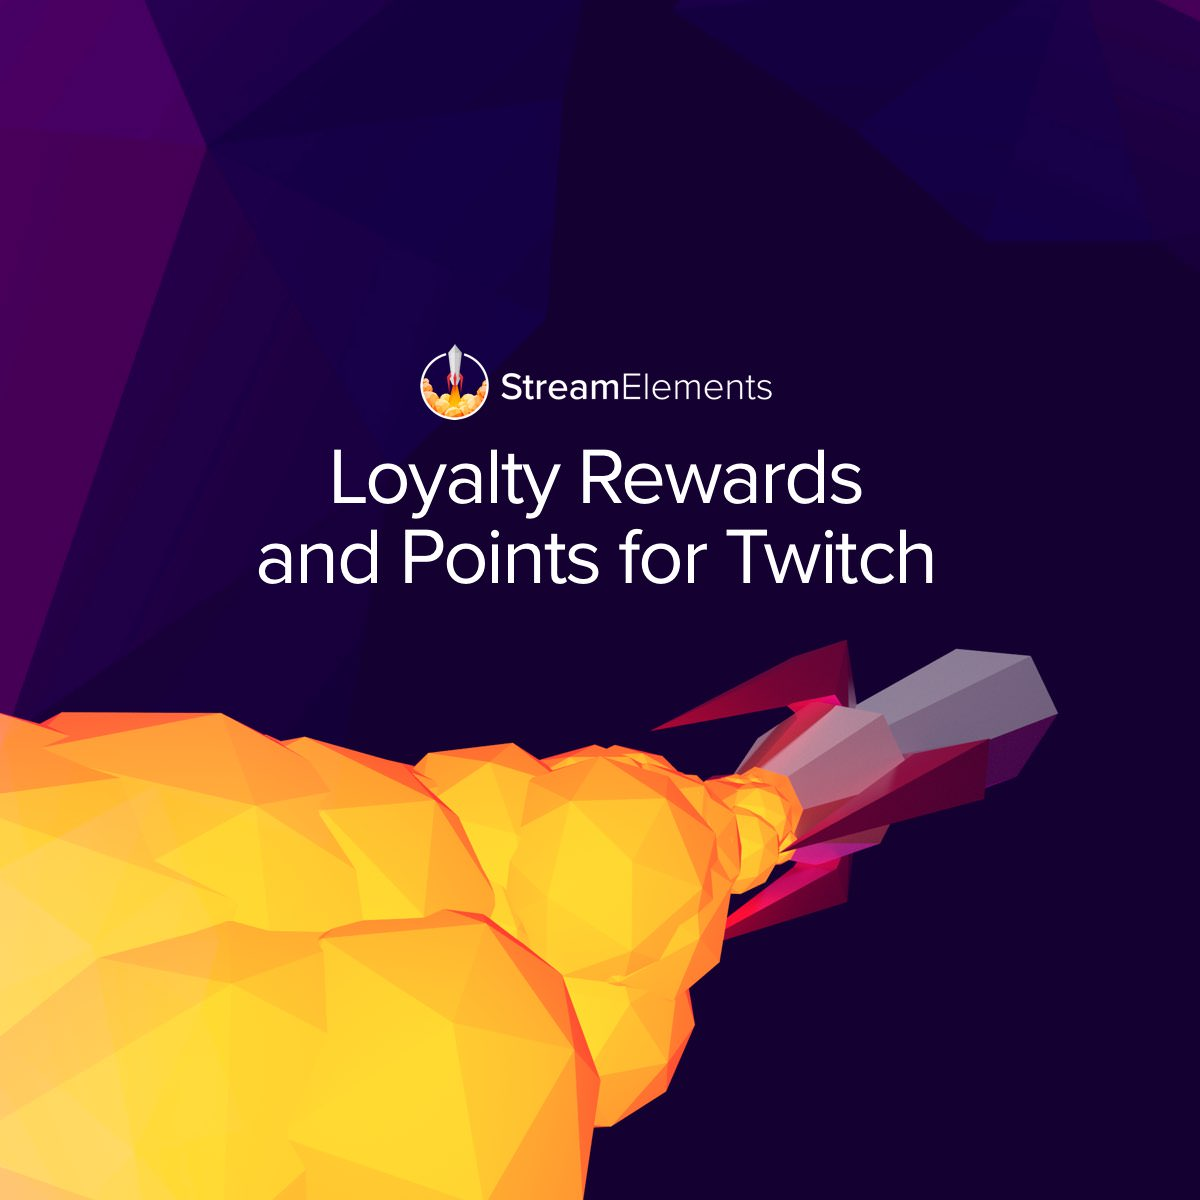 Loyalty Rewards and Points for Twitch | StreamElements Loyalty System